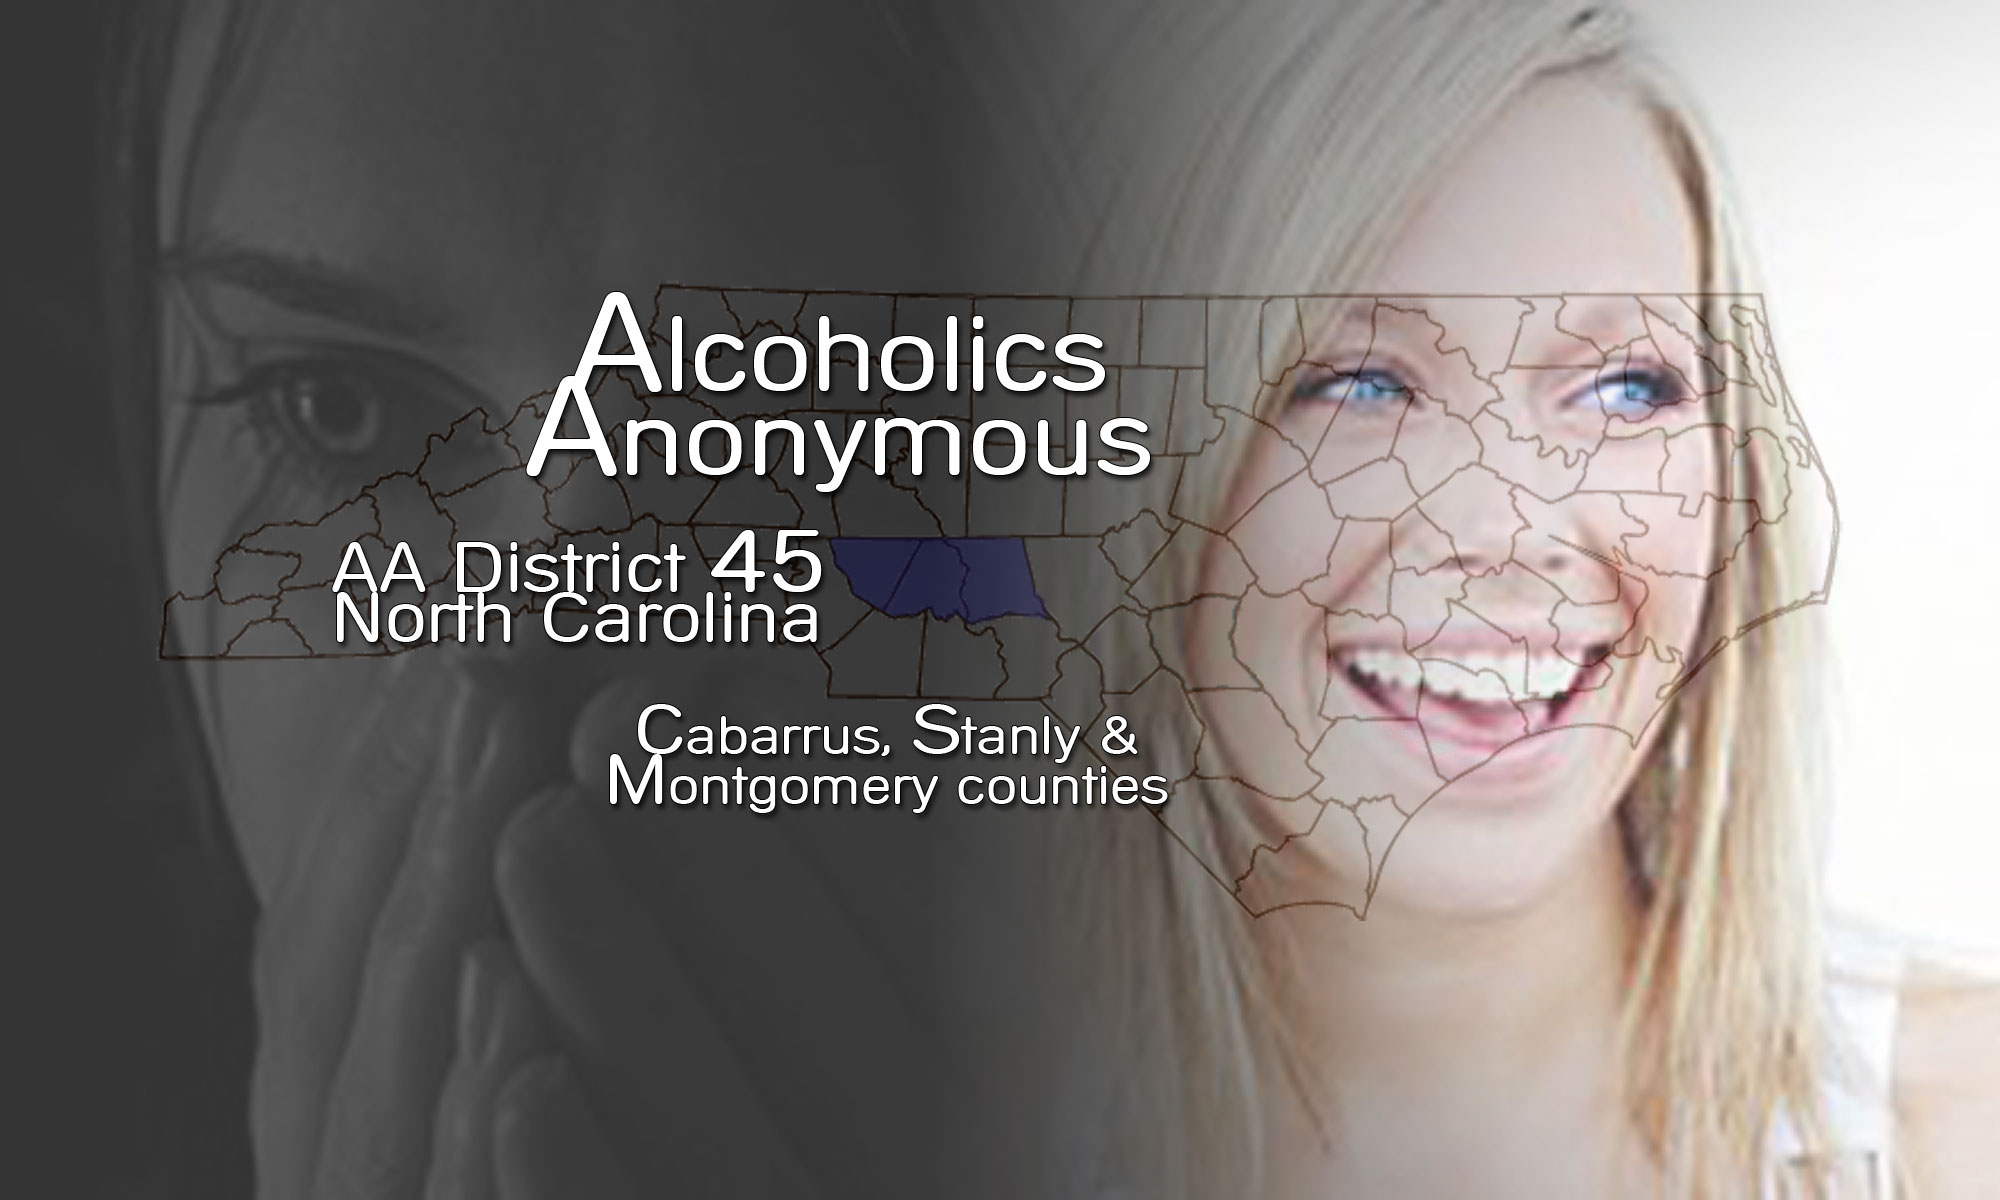 Alcoholics Anonymous ~ serving Cabarrus, Stanly and Montgomery Counties of North Carolina